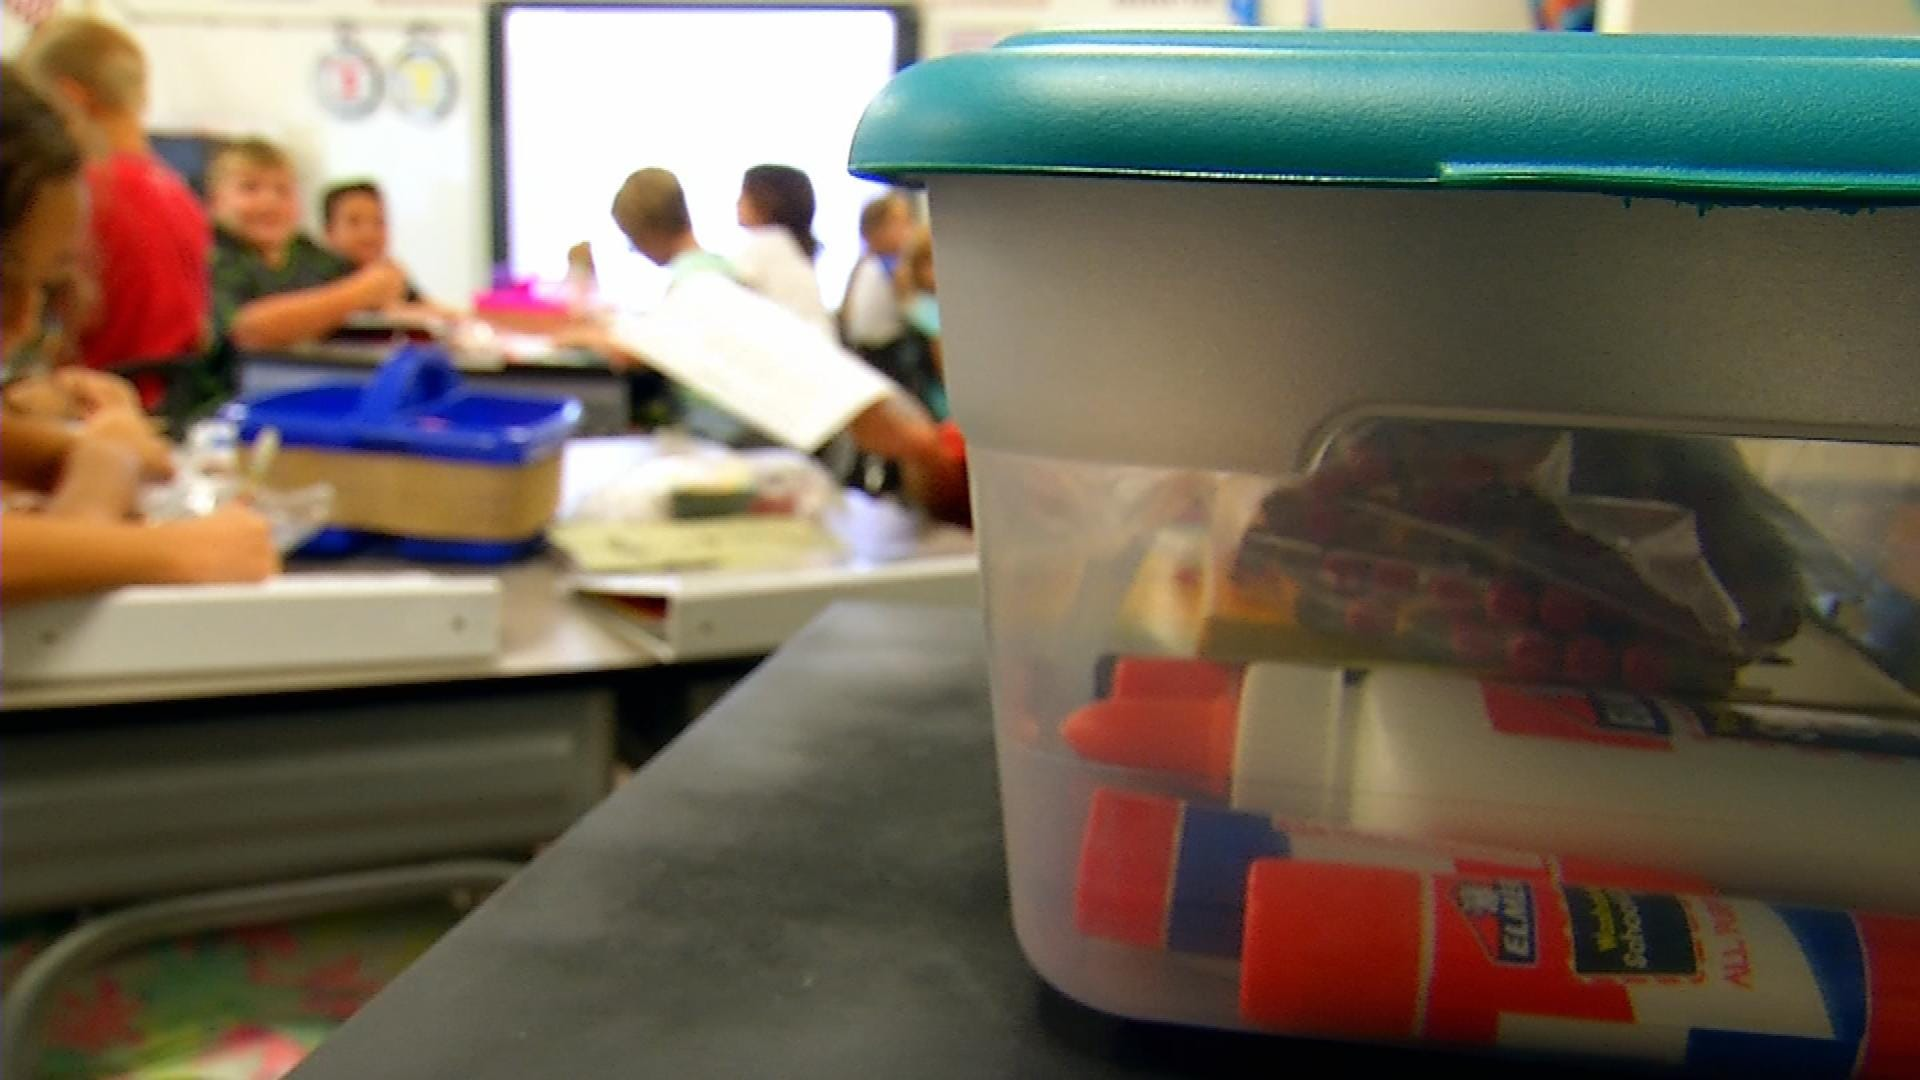 Parents Remember: Back To School Can Be An Anxious Time For Students